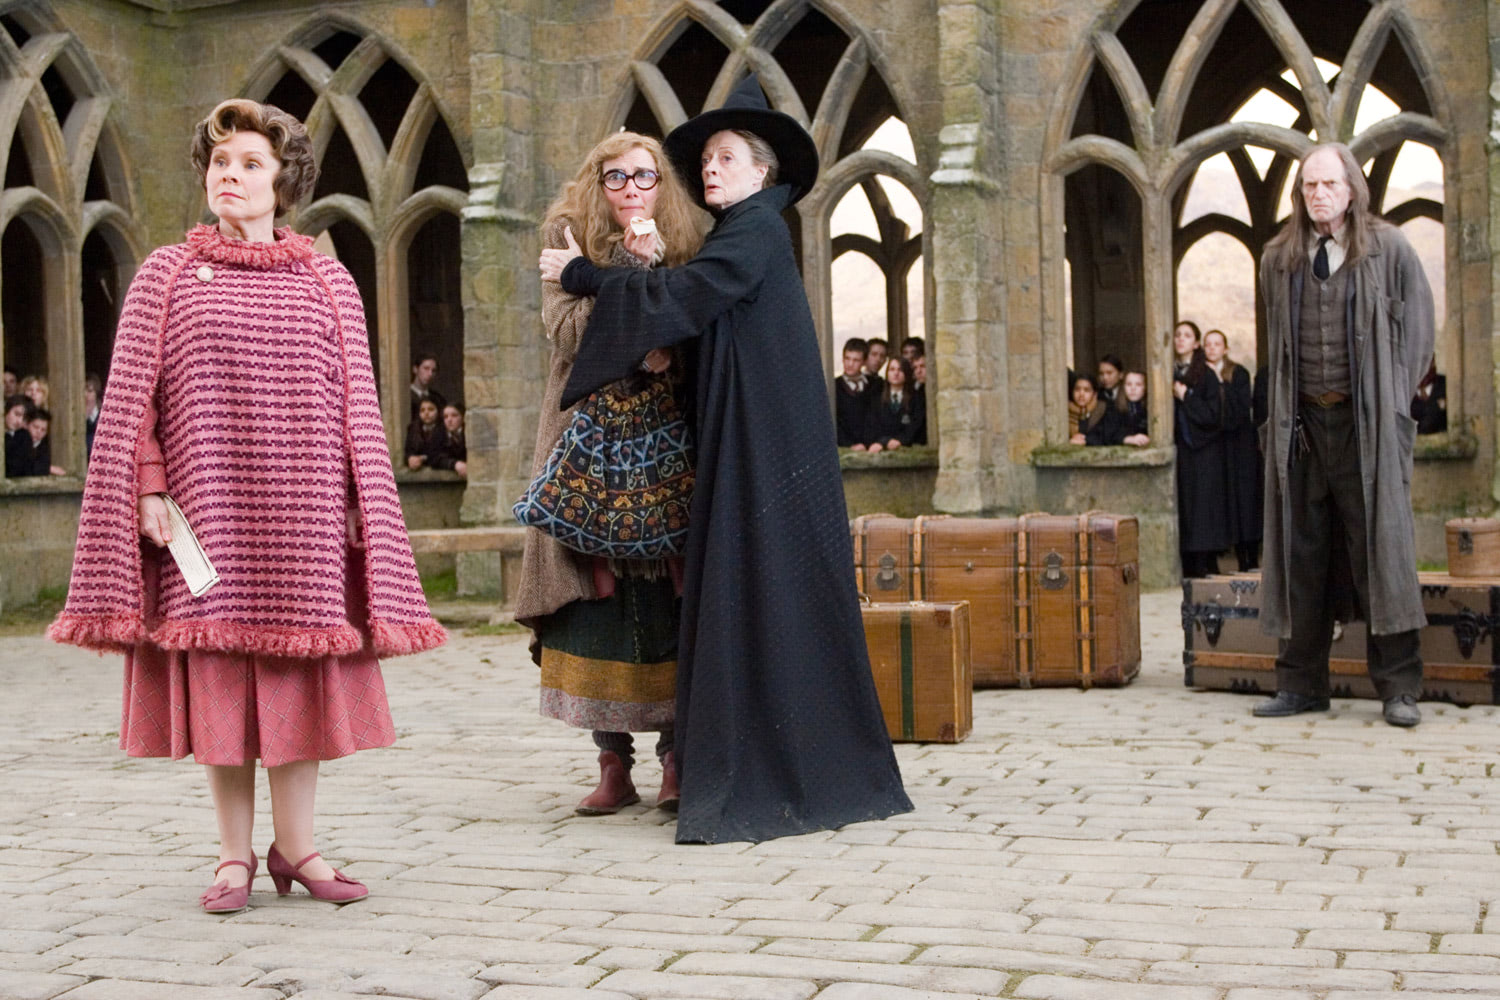 Umbridge, Trelawney, McGonagall and Filch